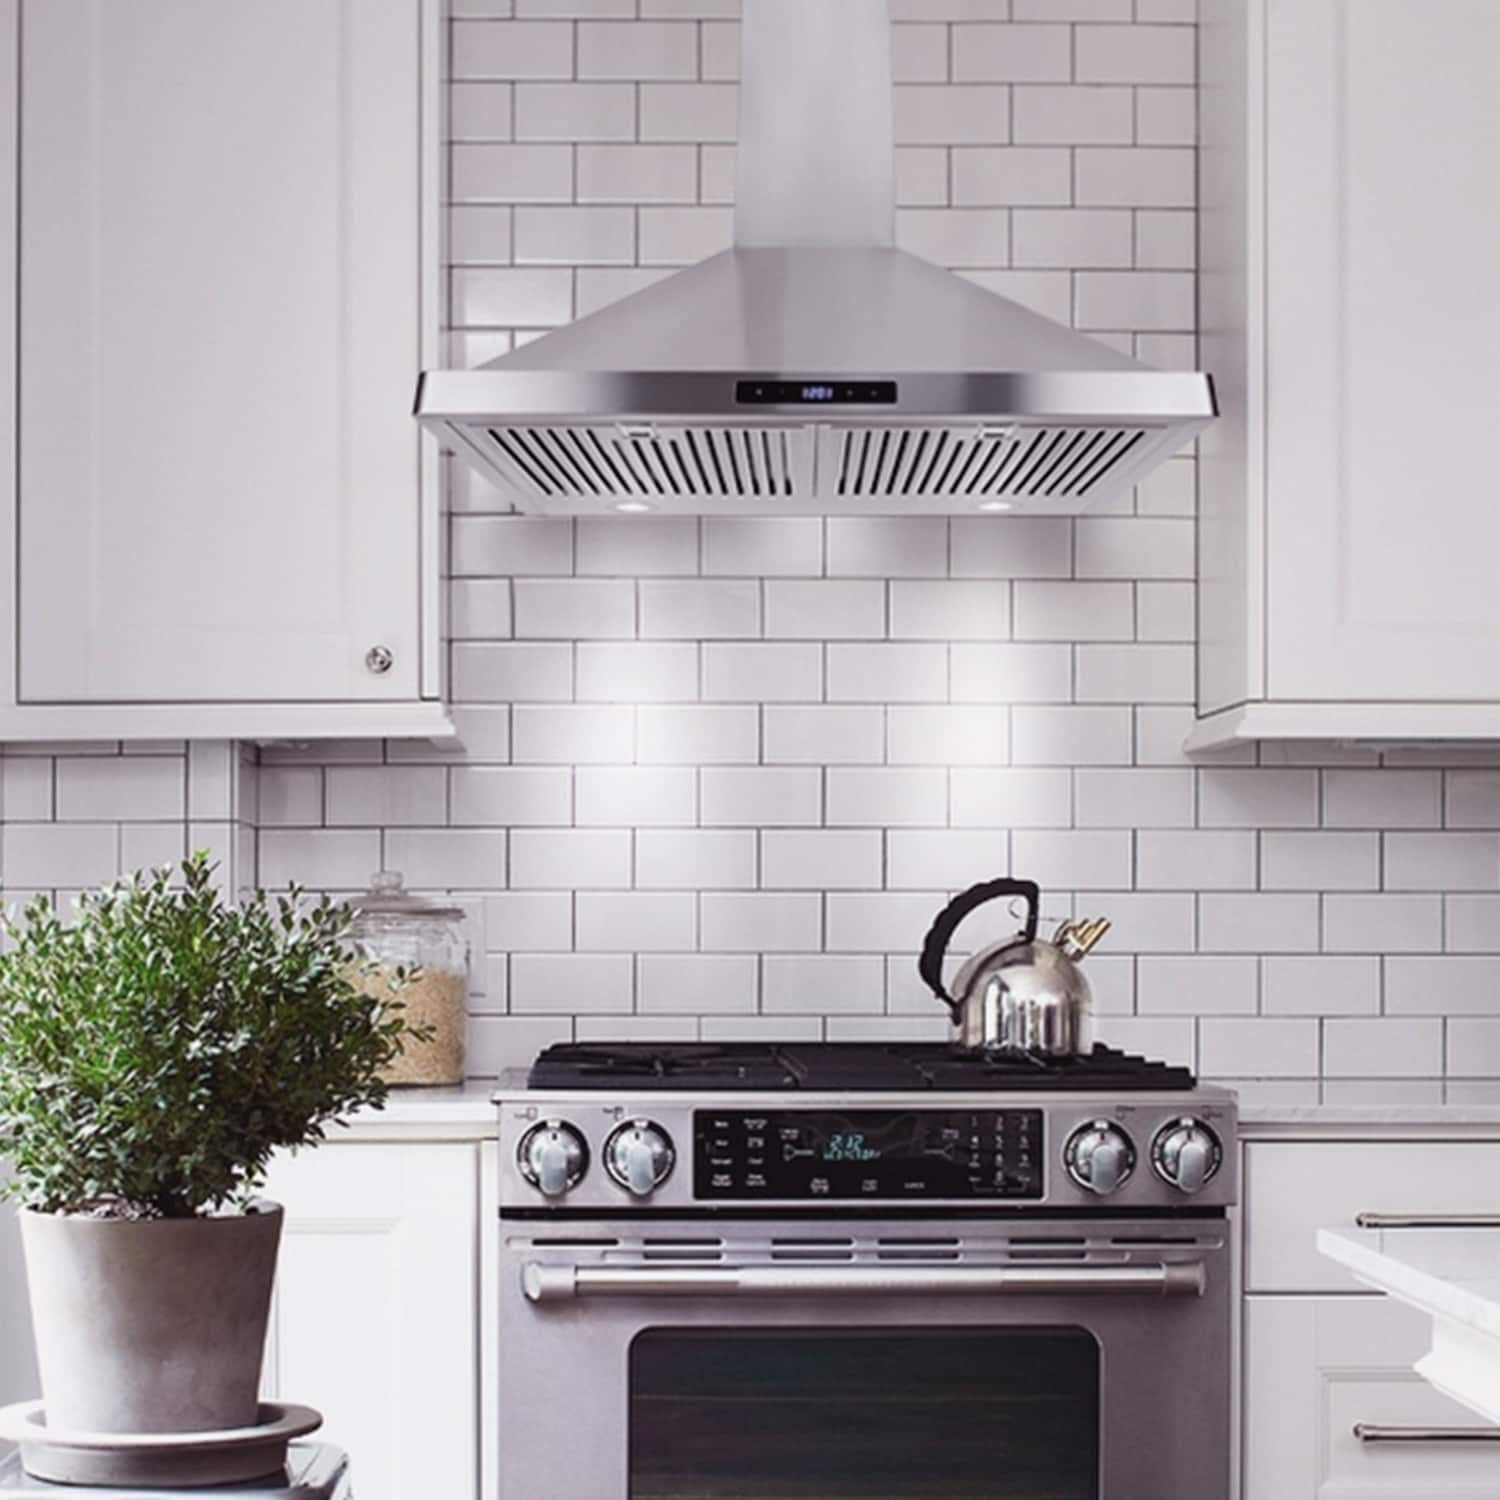 Cosmo 30 Inch Range Hood 760 CFM Ducted Wall Mount In Stainless Steel    STAINLESS STEEL   Free Shipping Today   Overstock   19910733